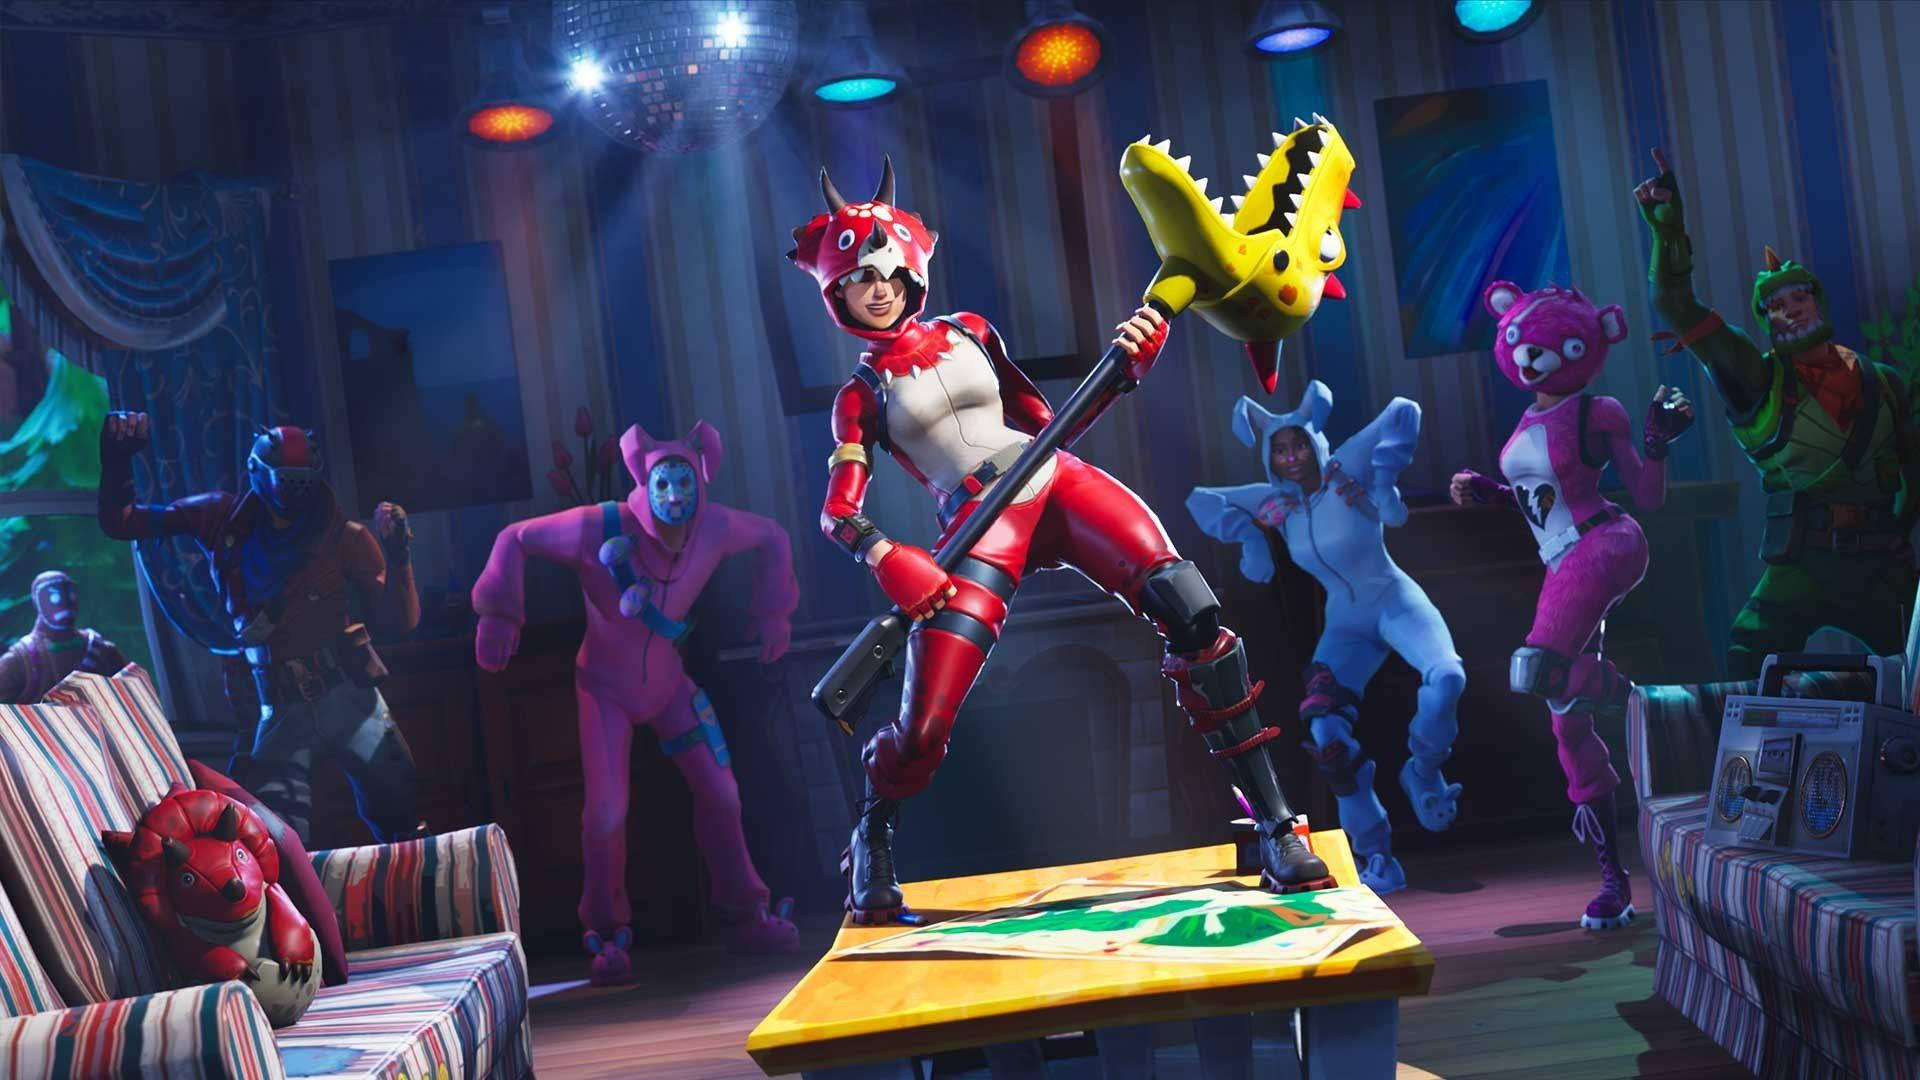 Fortnite Dances Wallpapers Wallpaper Cave If you want to watch these dances or emotes in action, you can click on each image to watch a video. fortnite dances wallpapers wallpaper cave